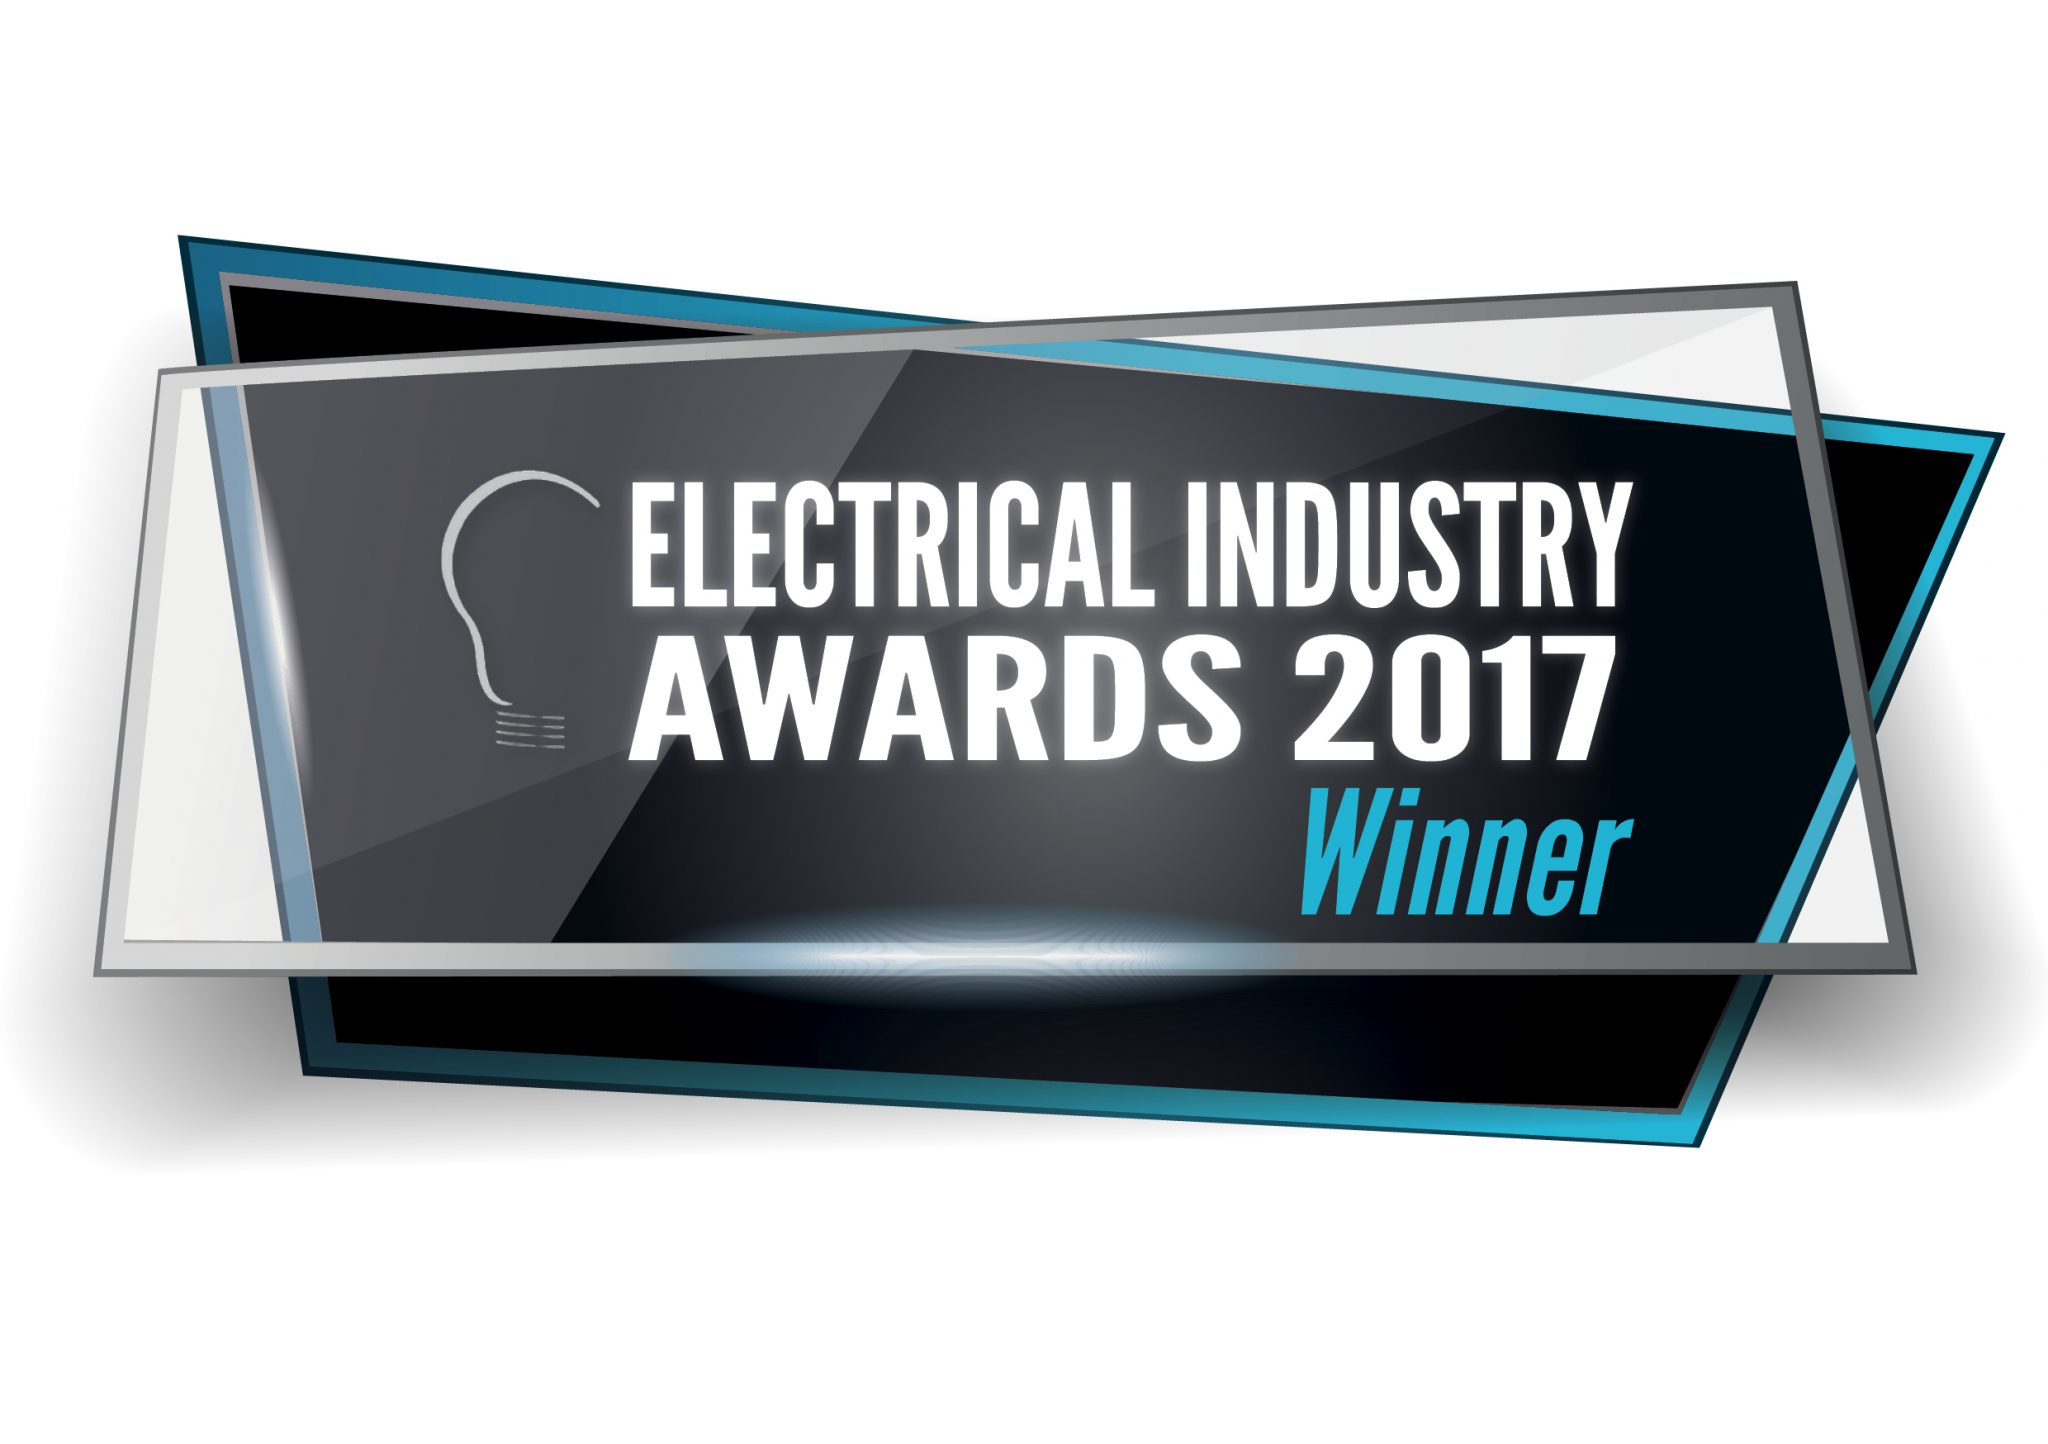 Dali For Electricians Zencontrol Knx Lighting Wiring Diagram Lux Awards 2017 Shortlisted Electrical Industry Winner